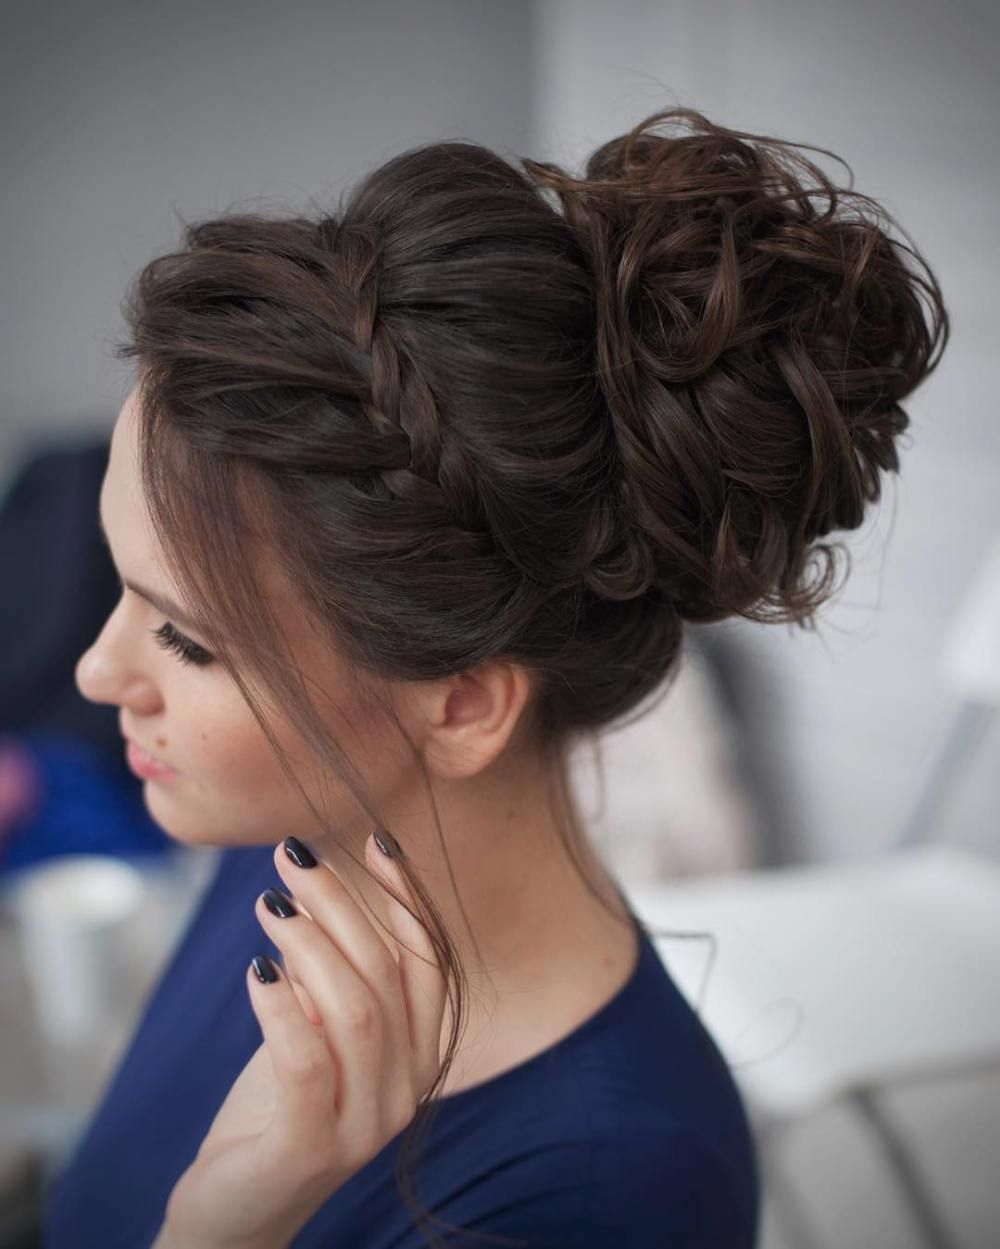 Astounding Updo Curly Hairstyles For Prom And Edgy Hair On Pinterest Short Hairstyles For Black Women Fulllsitofus